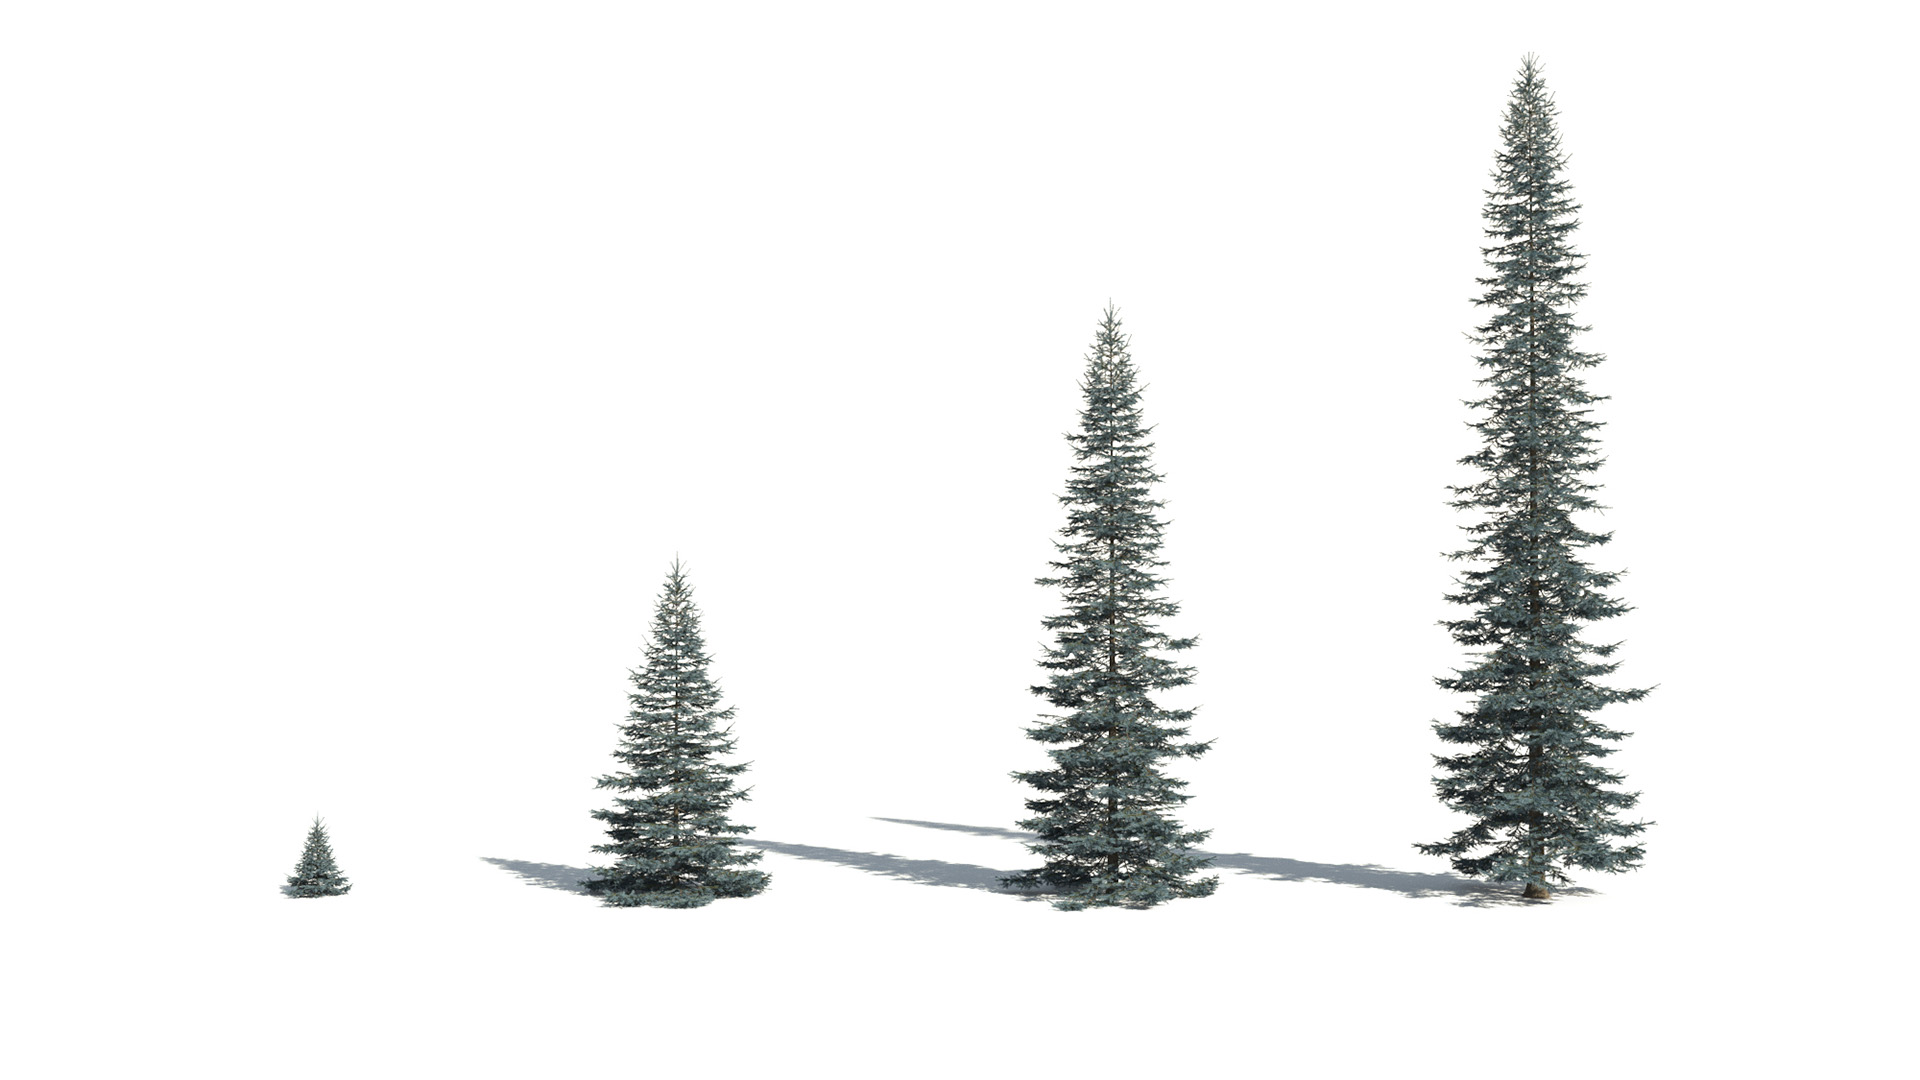 3D model of the Colorado Blue spruce Picea pungens maturity variations